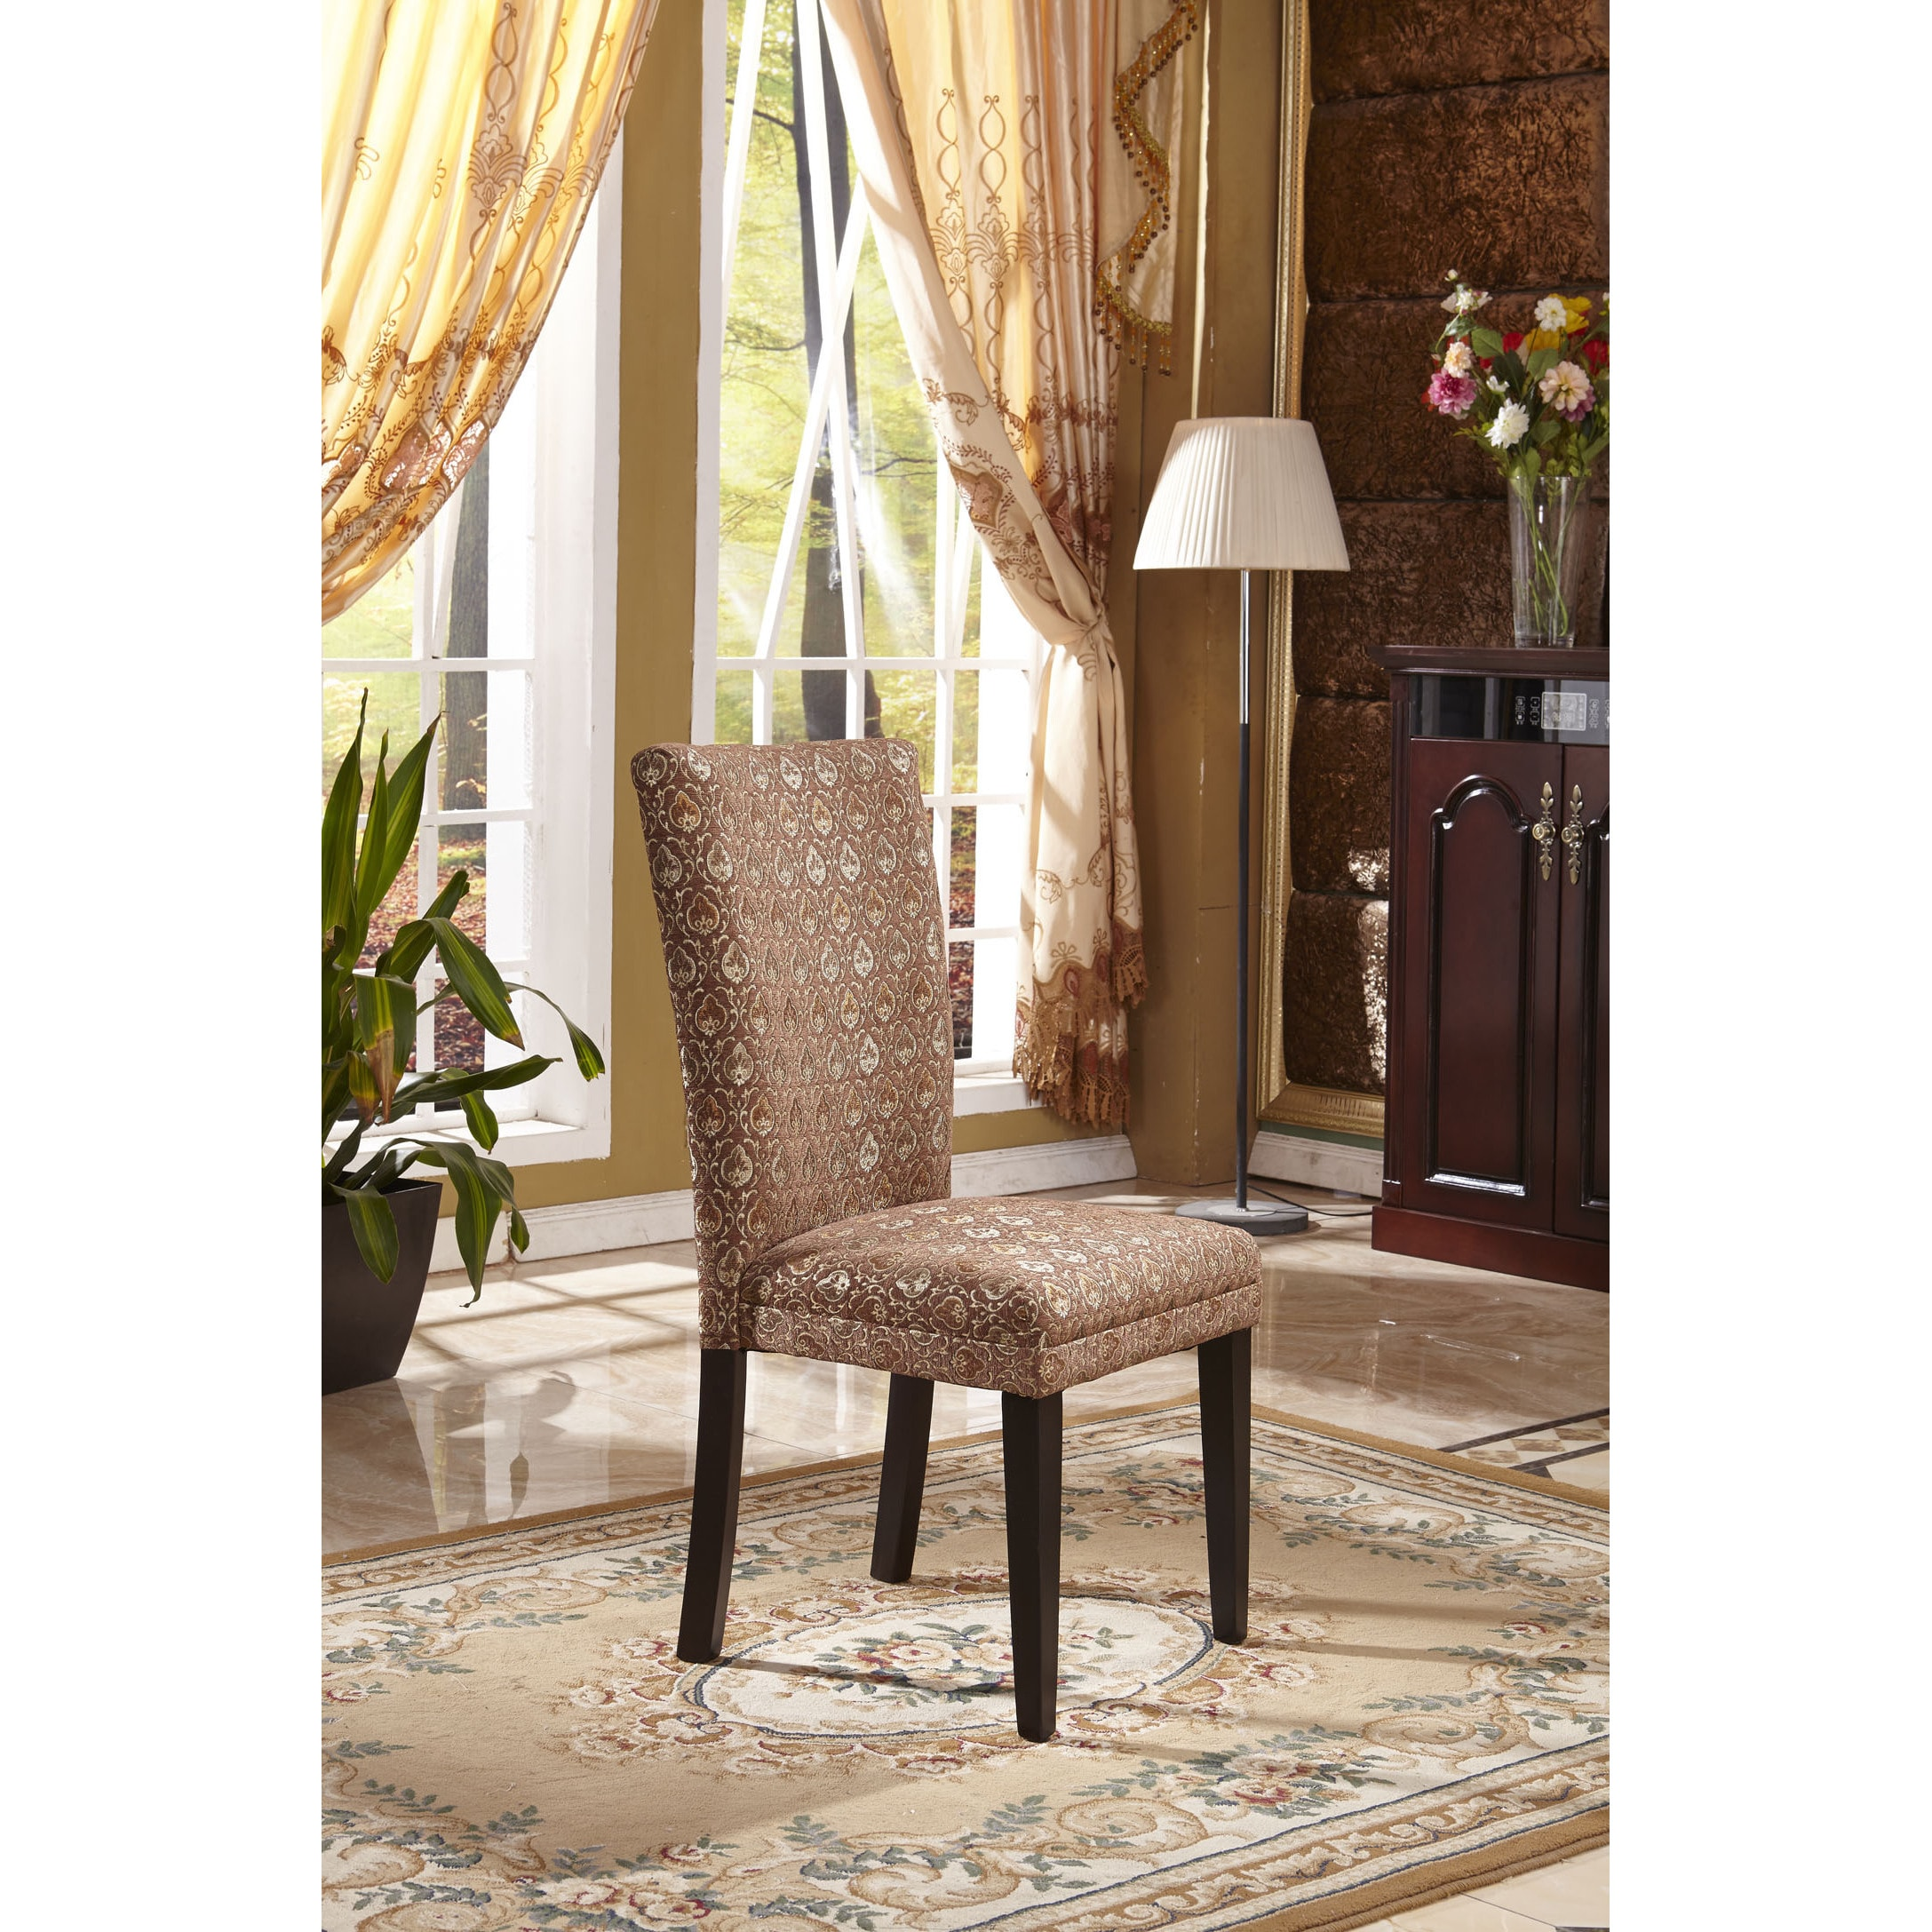 Shop Classic Parson Red Gold Damask Fabric Dining Chair Set Of 2 Overstock 9972858